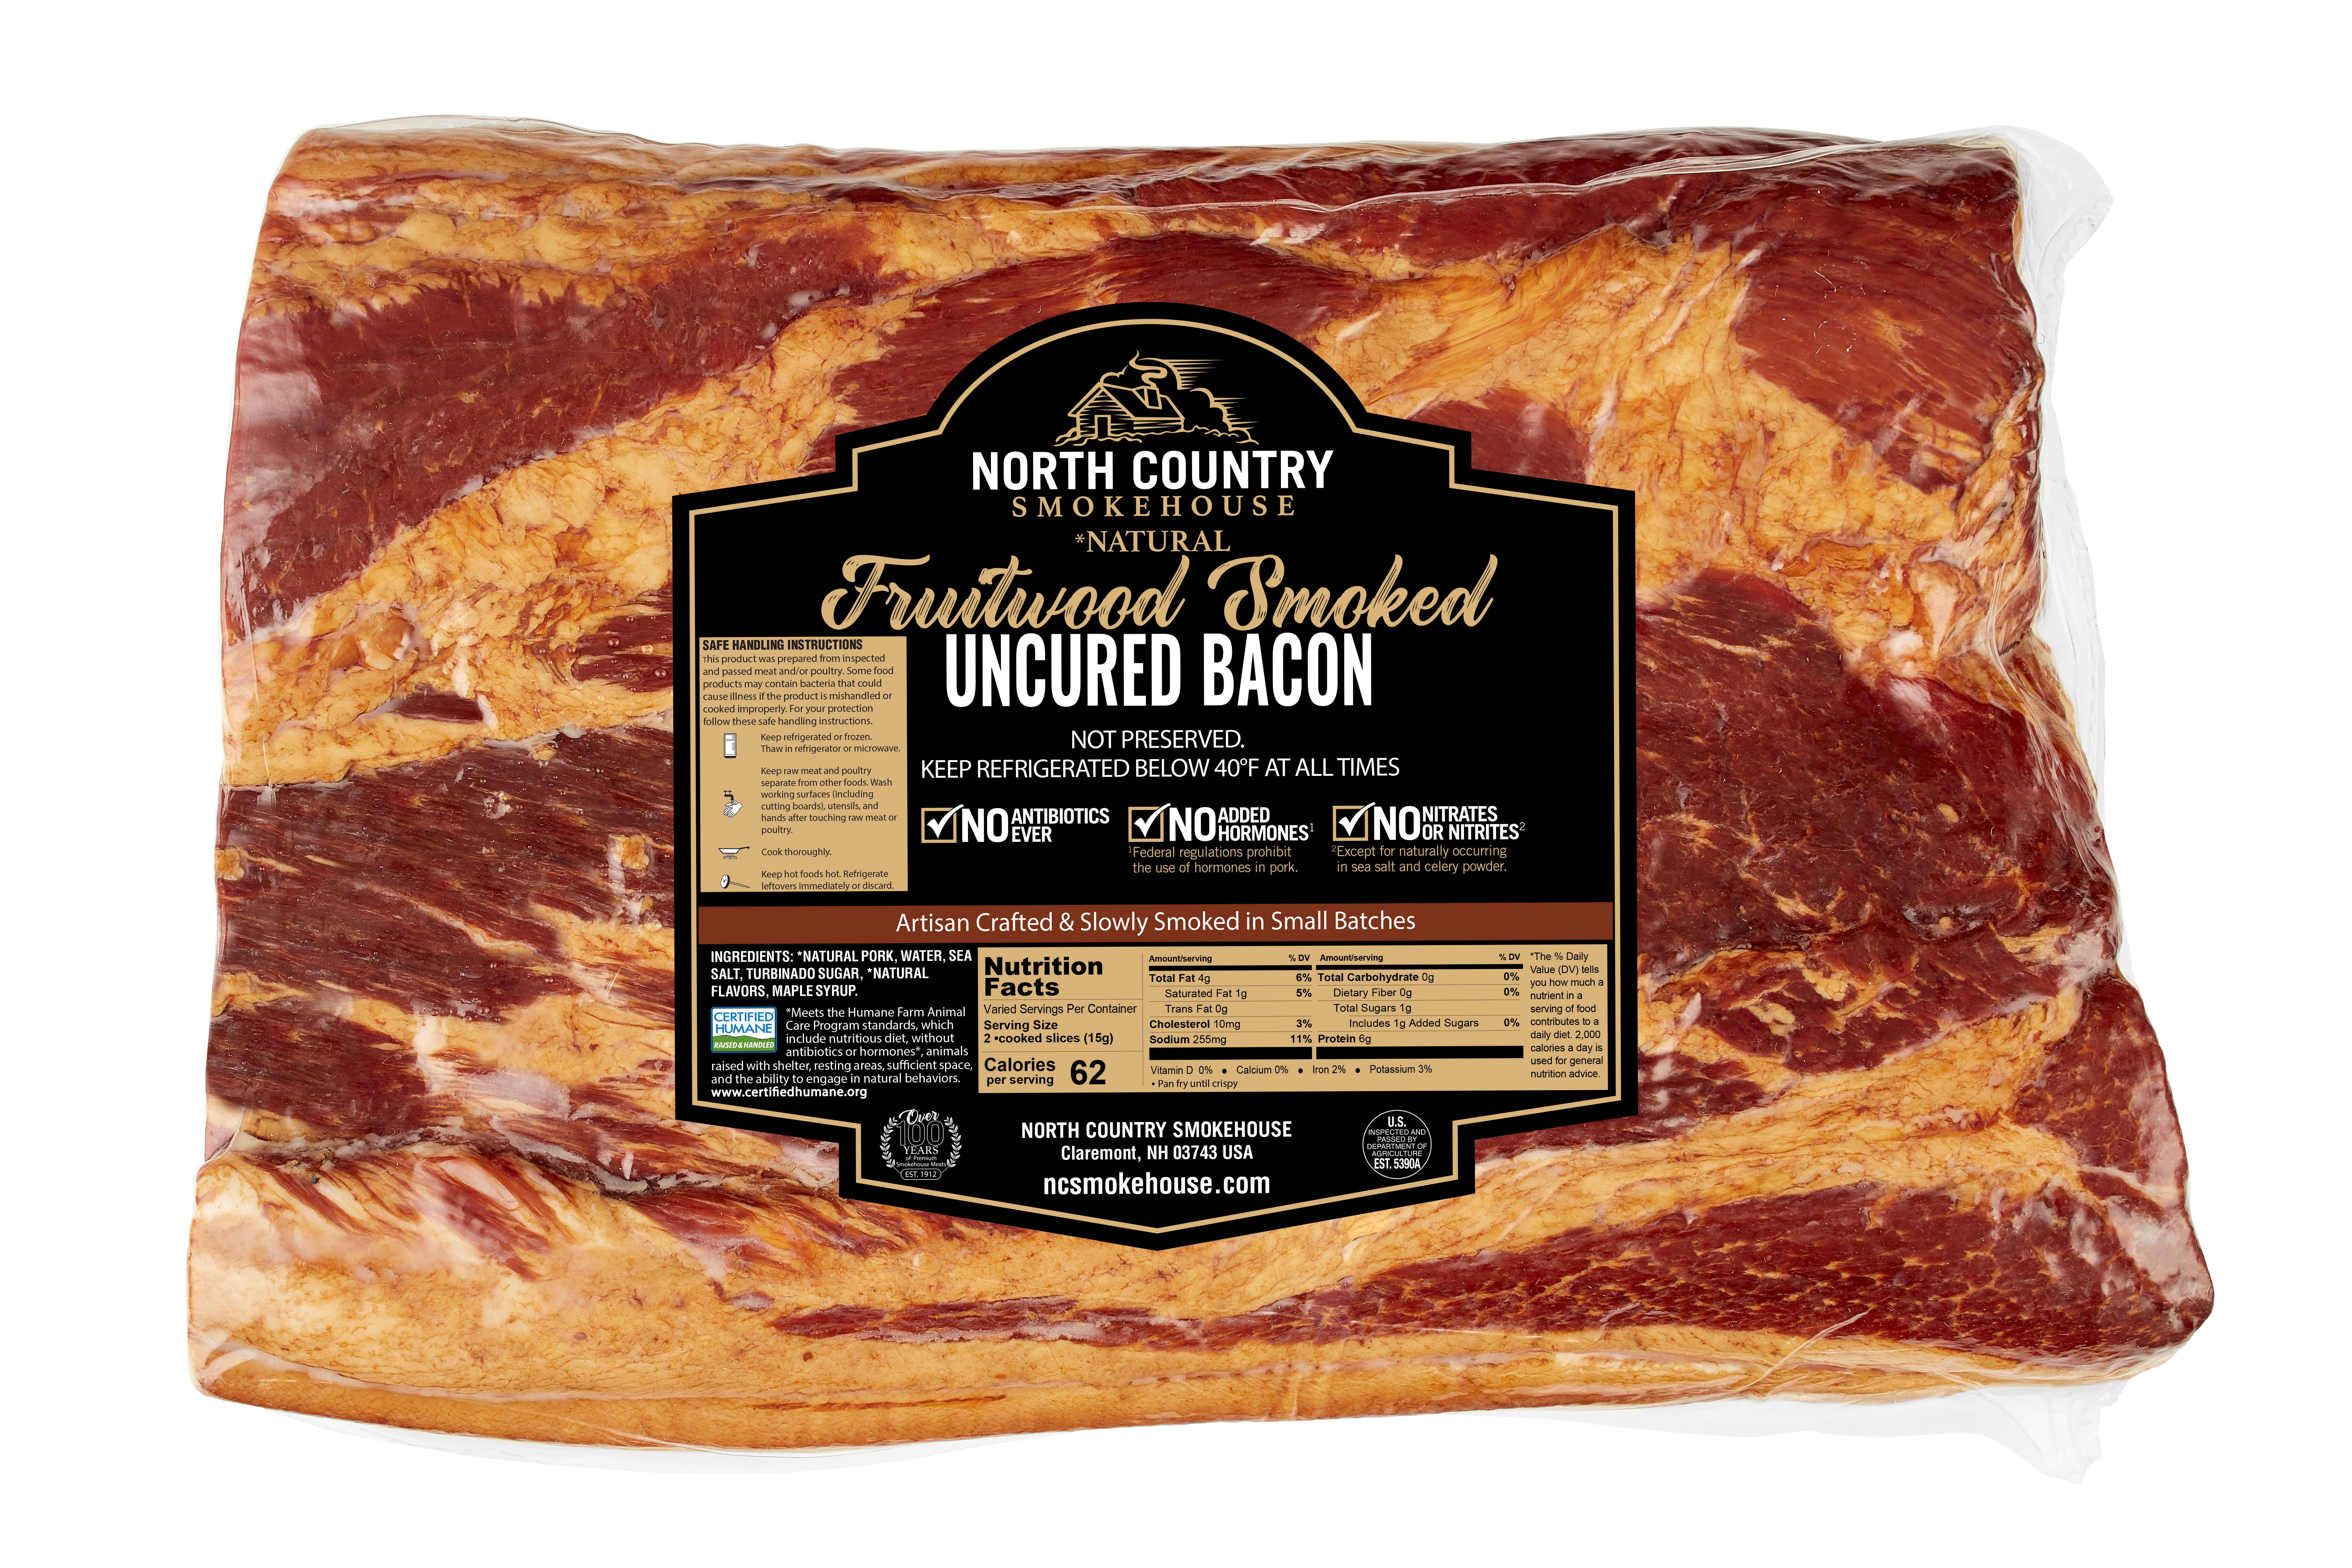 Natural Fruitwood Smoked Slab Bacon - 5-7 lb. package